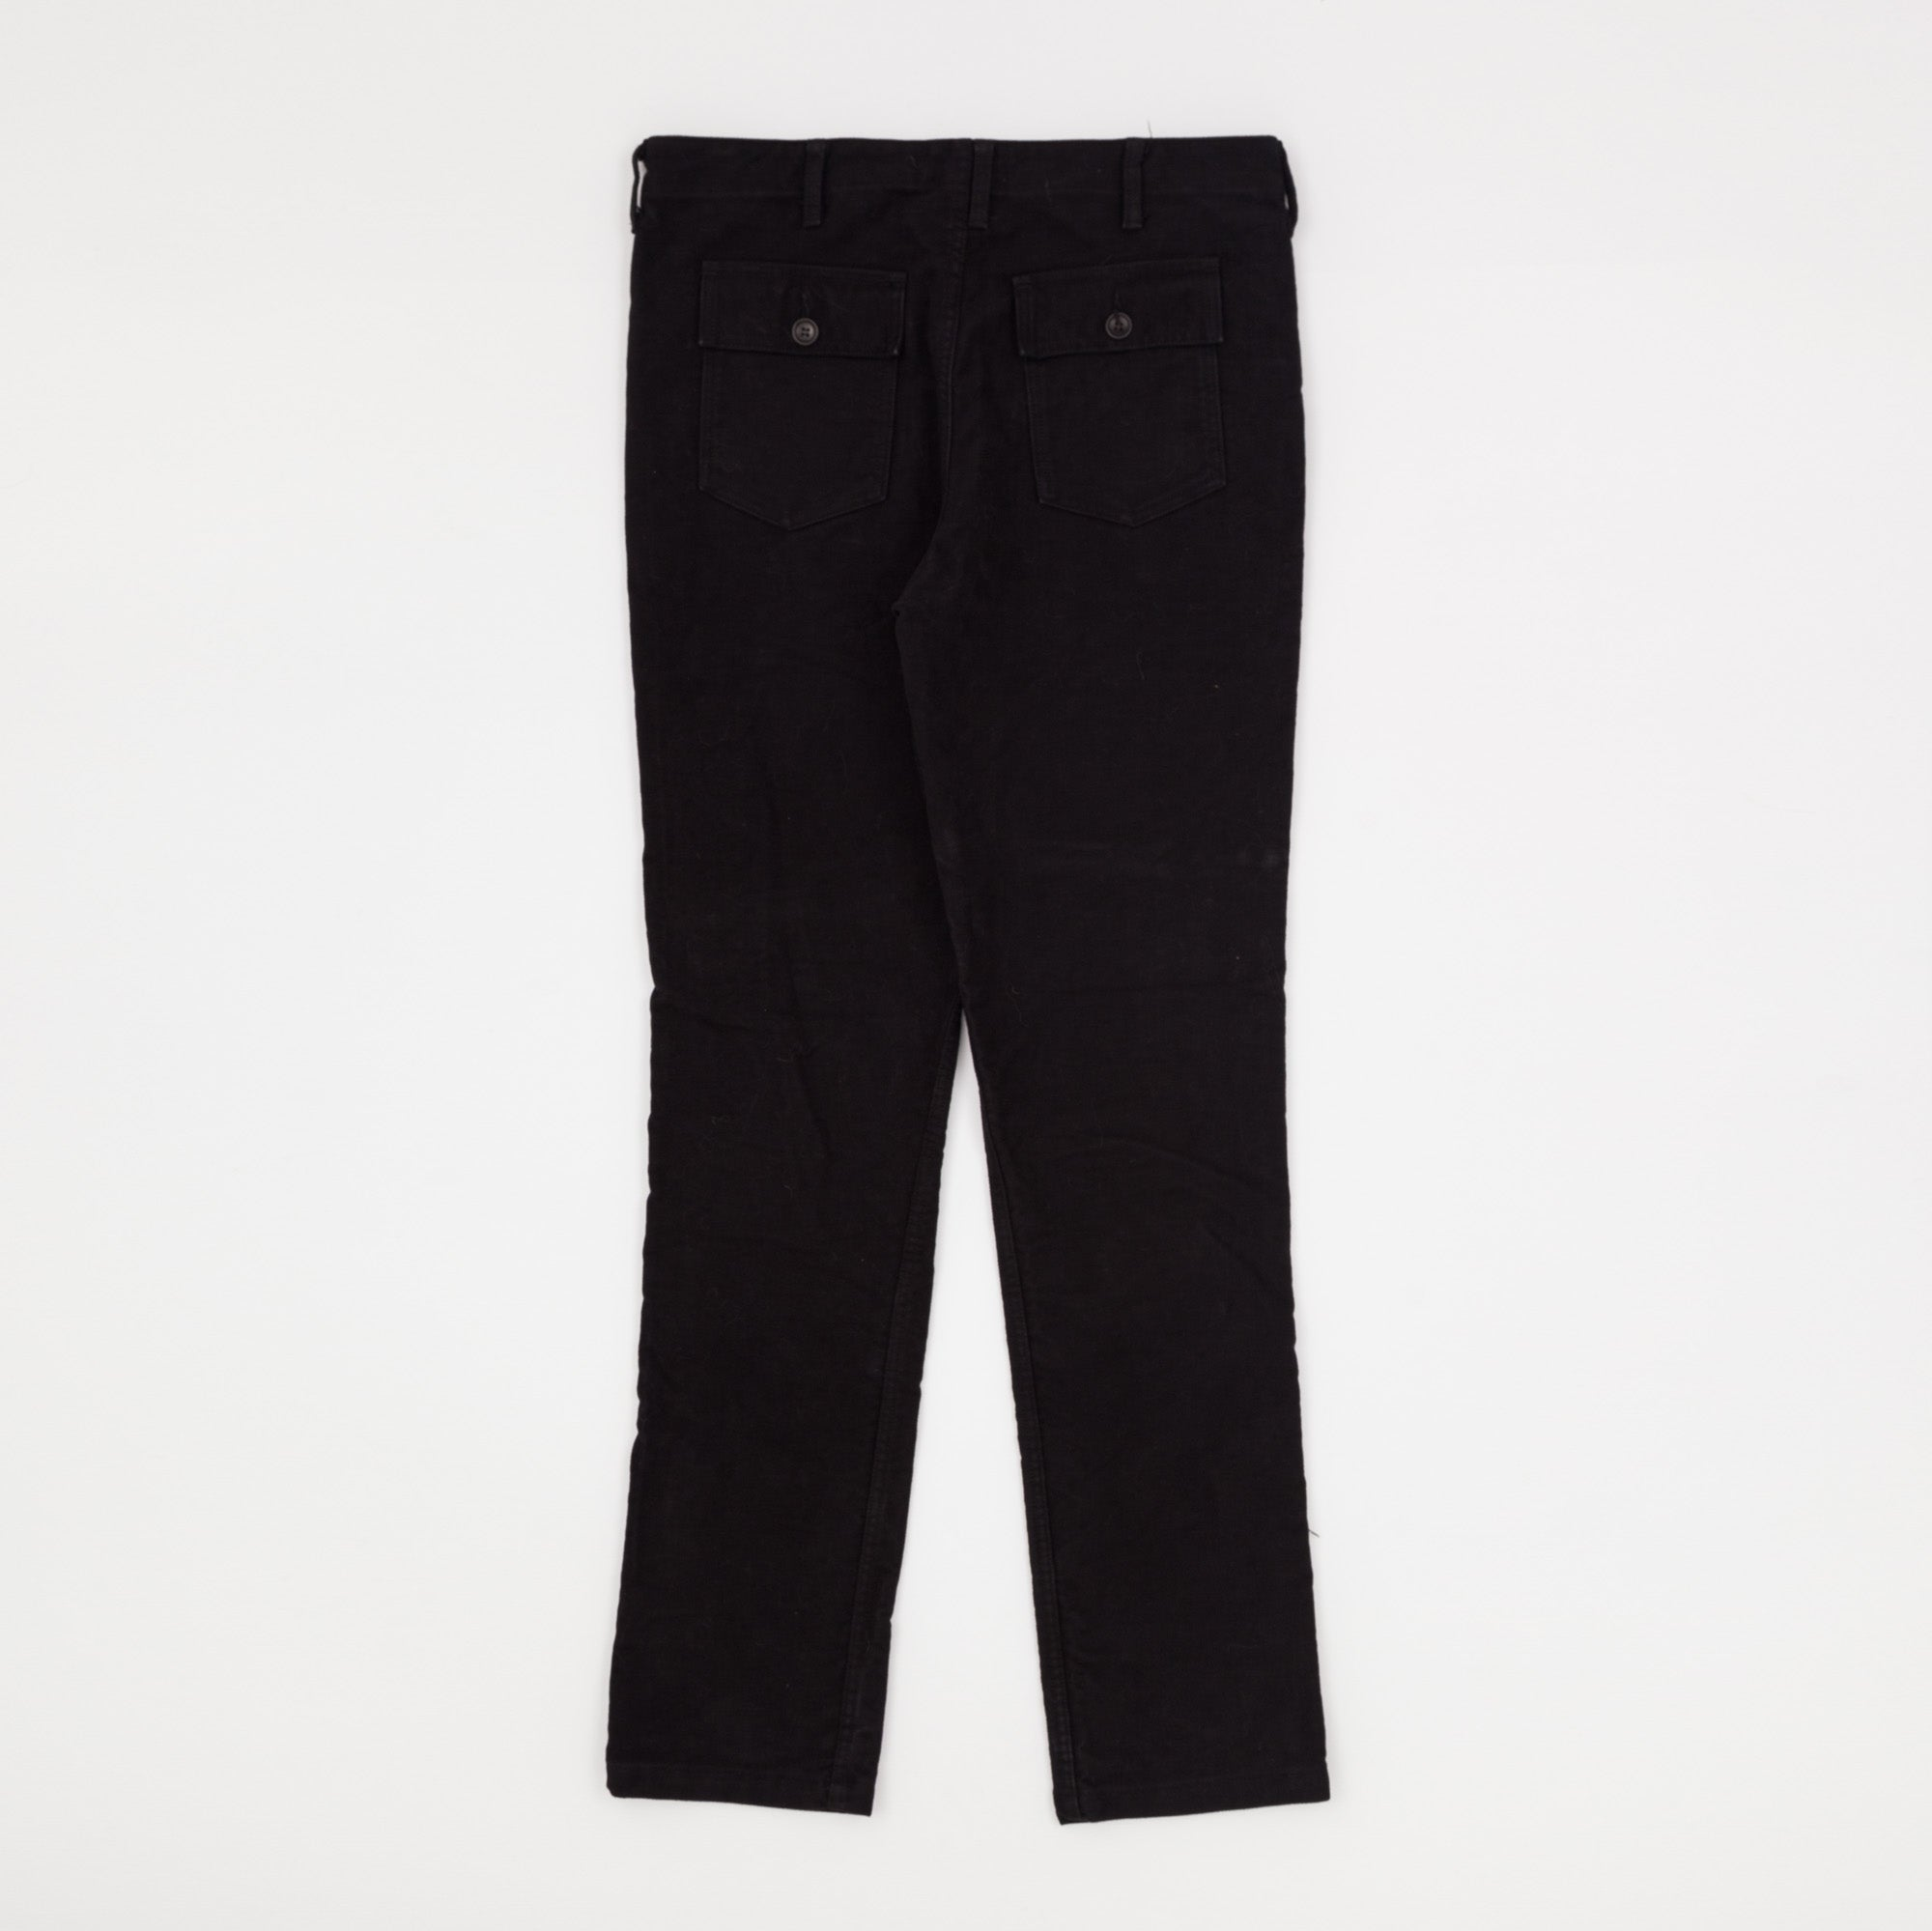 Moleskin Fatigue Pants